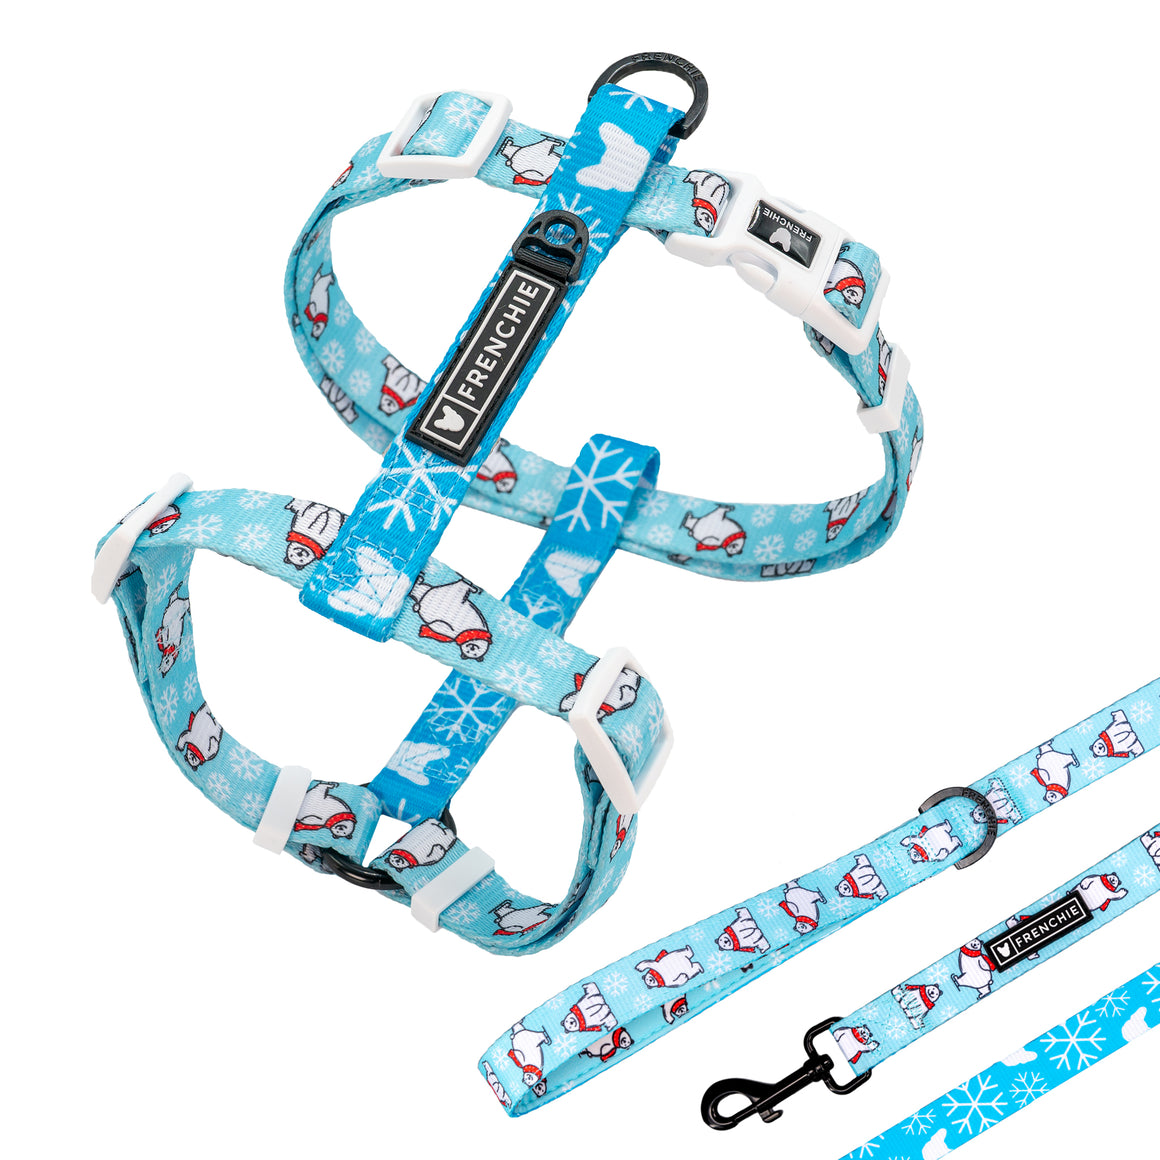 Matching Set- Frenchie Strap Harness and Comfort Leash- Polar Bear